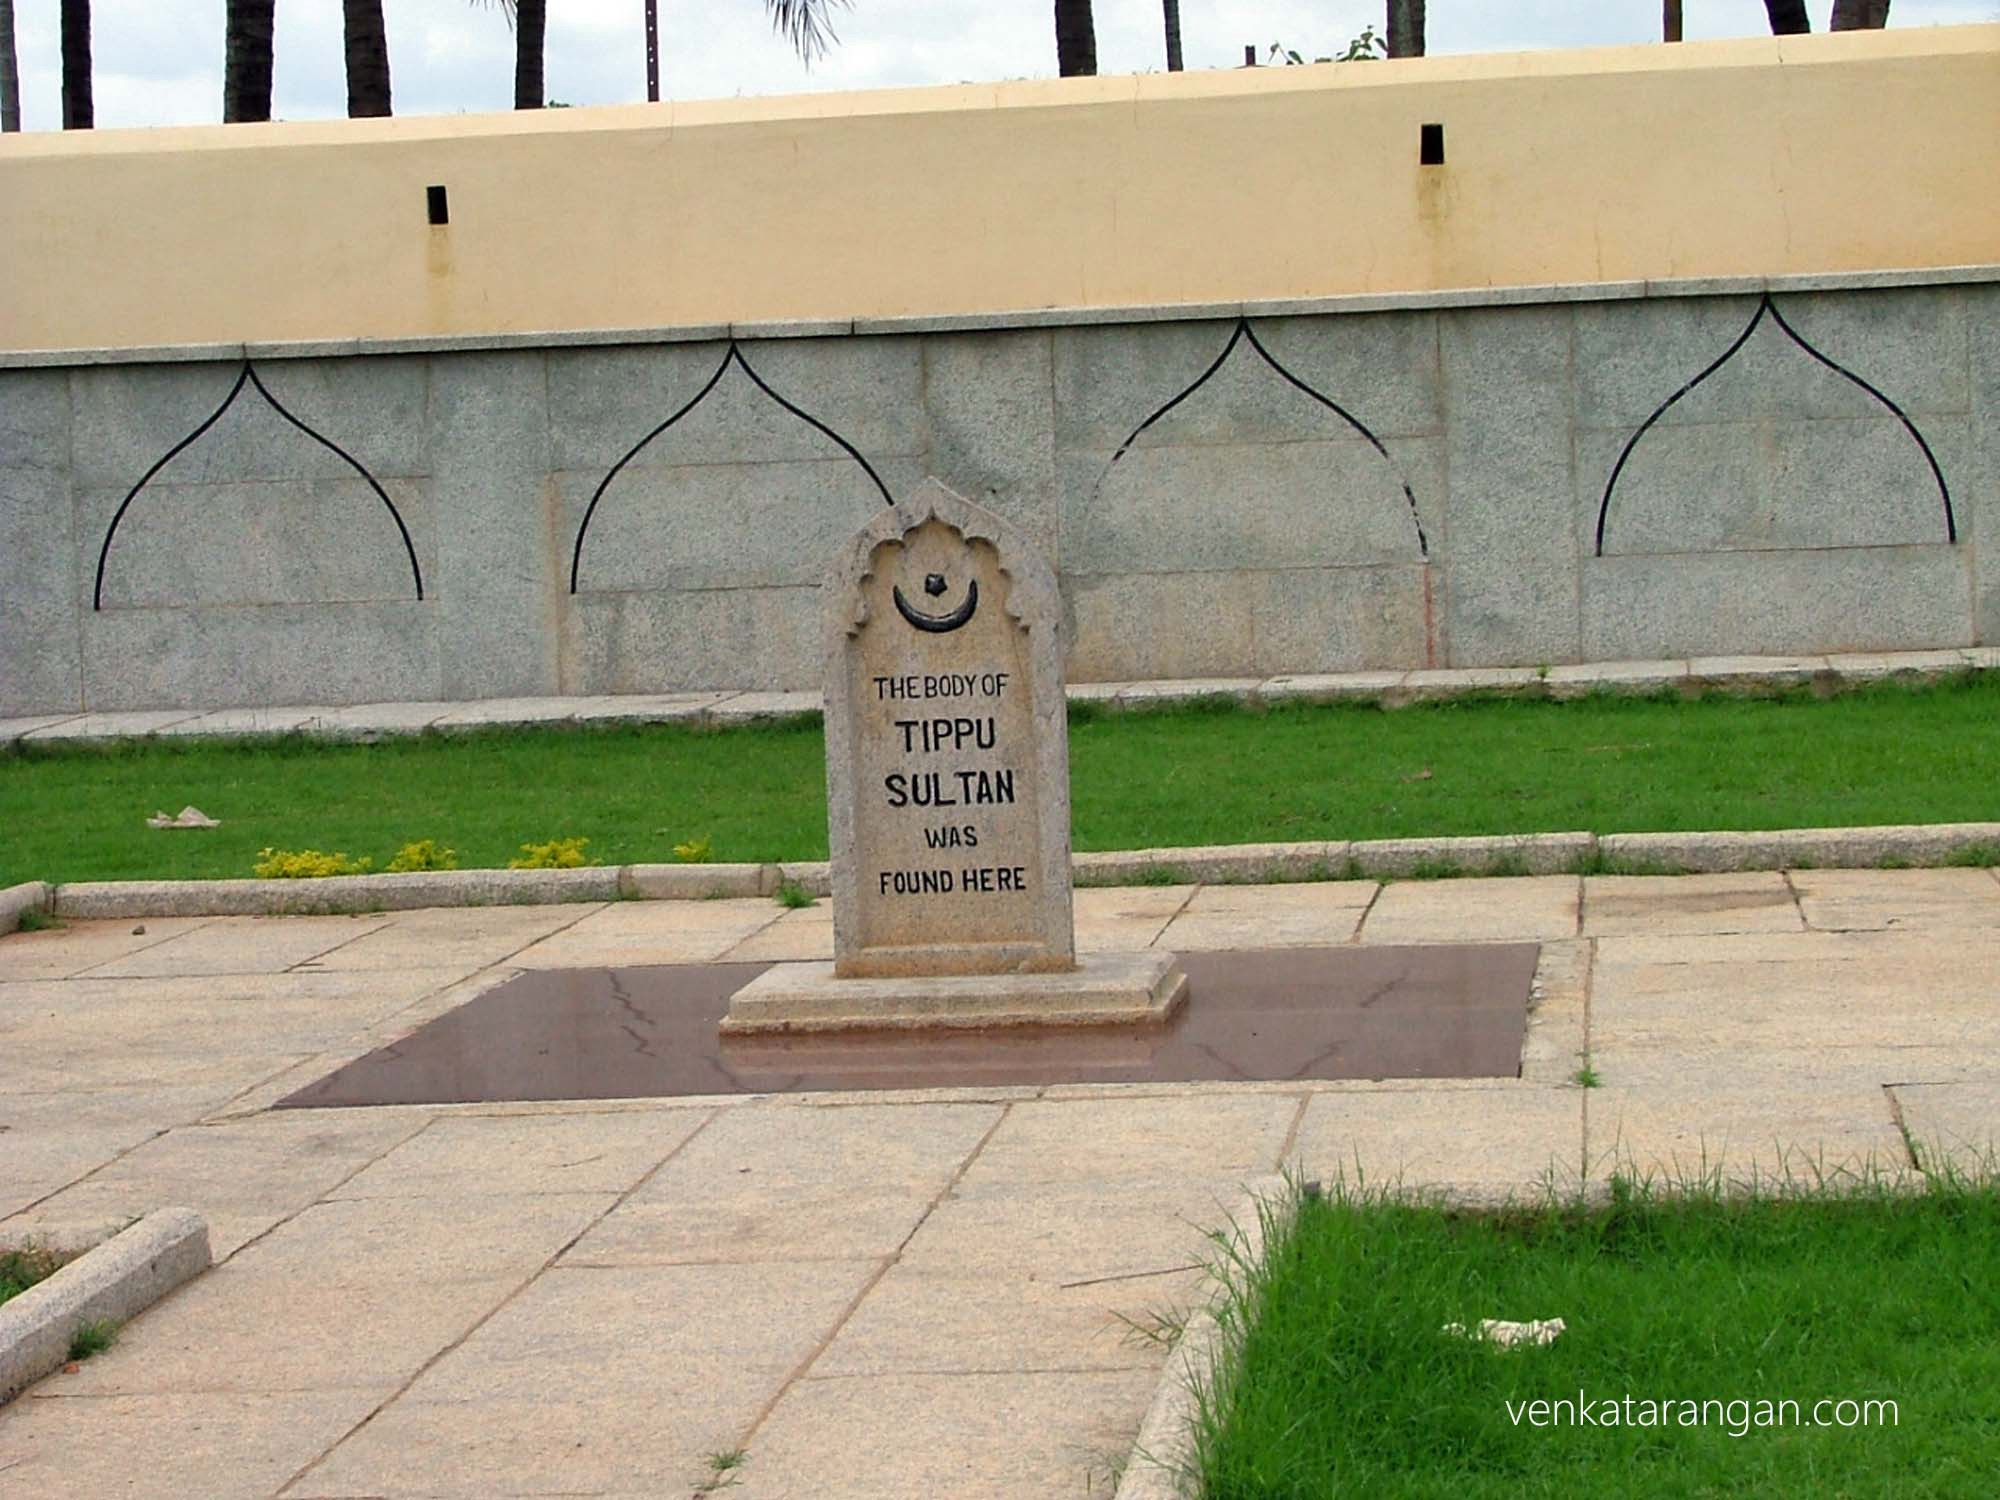 Tipu Sultan's tomb - buried here on 4th May 1799 by Colonel Wellesley